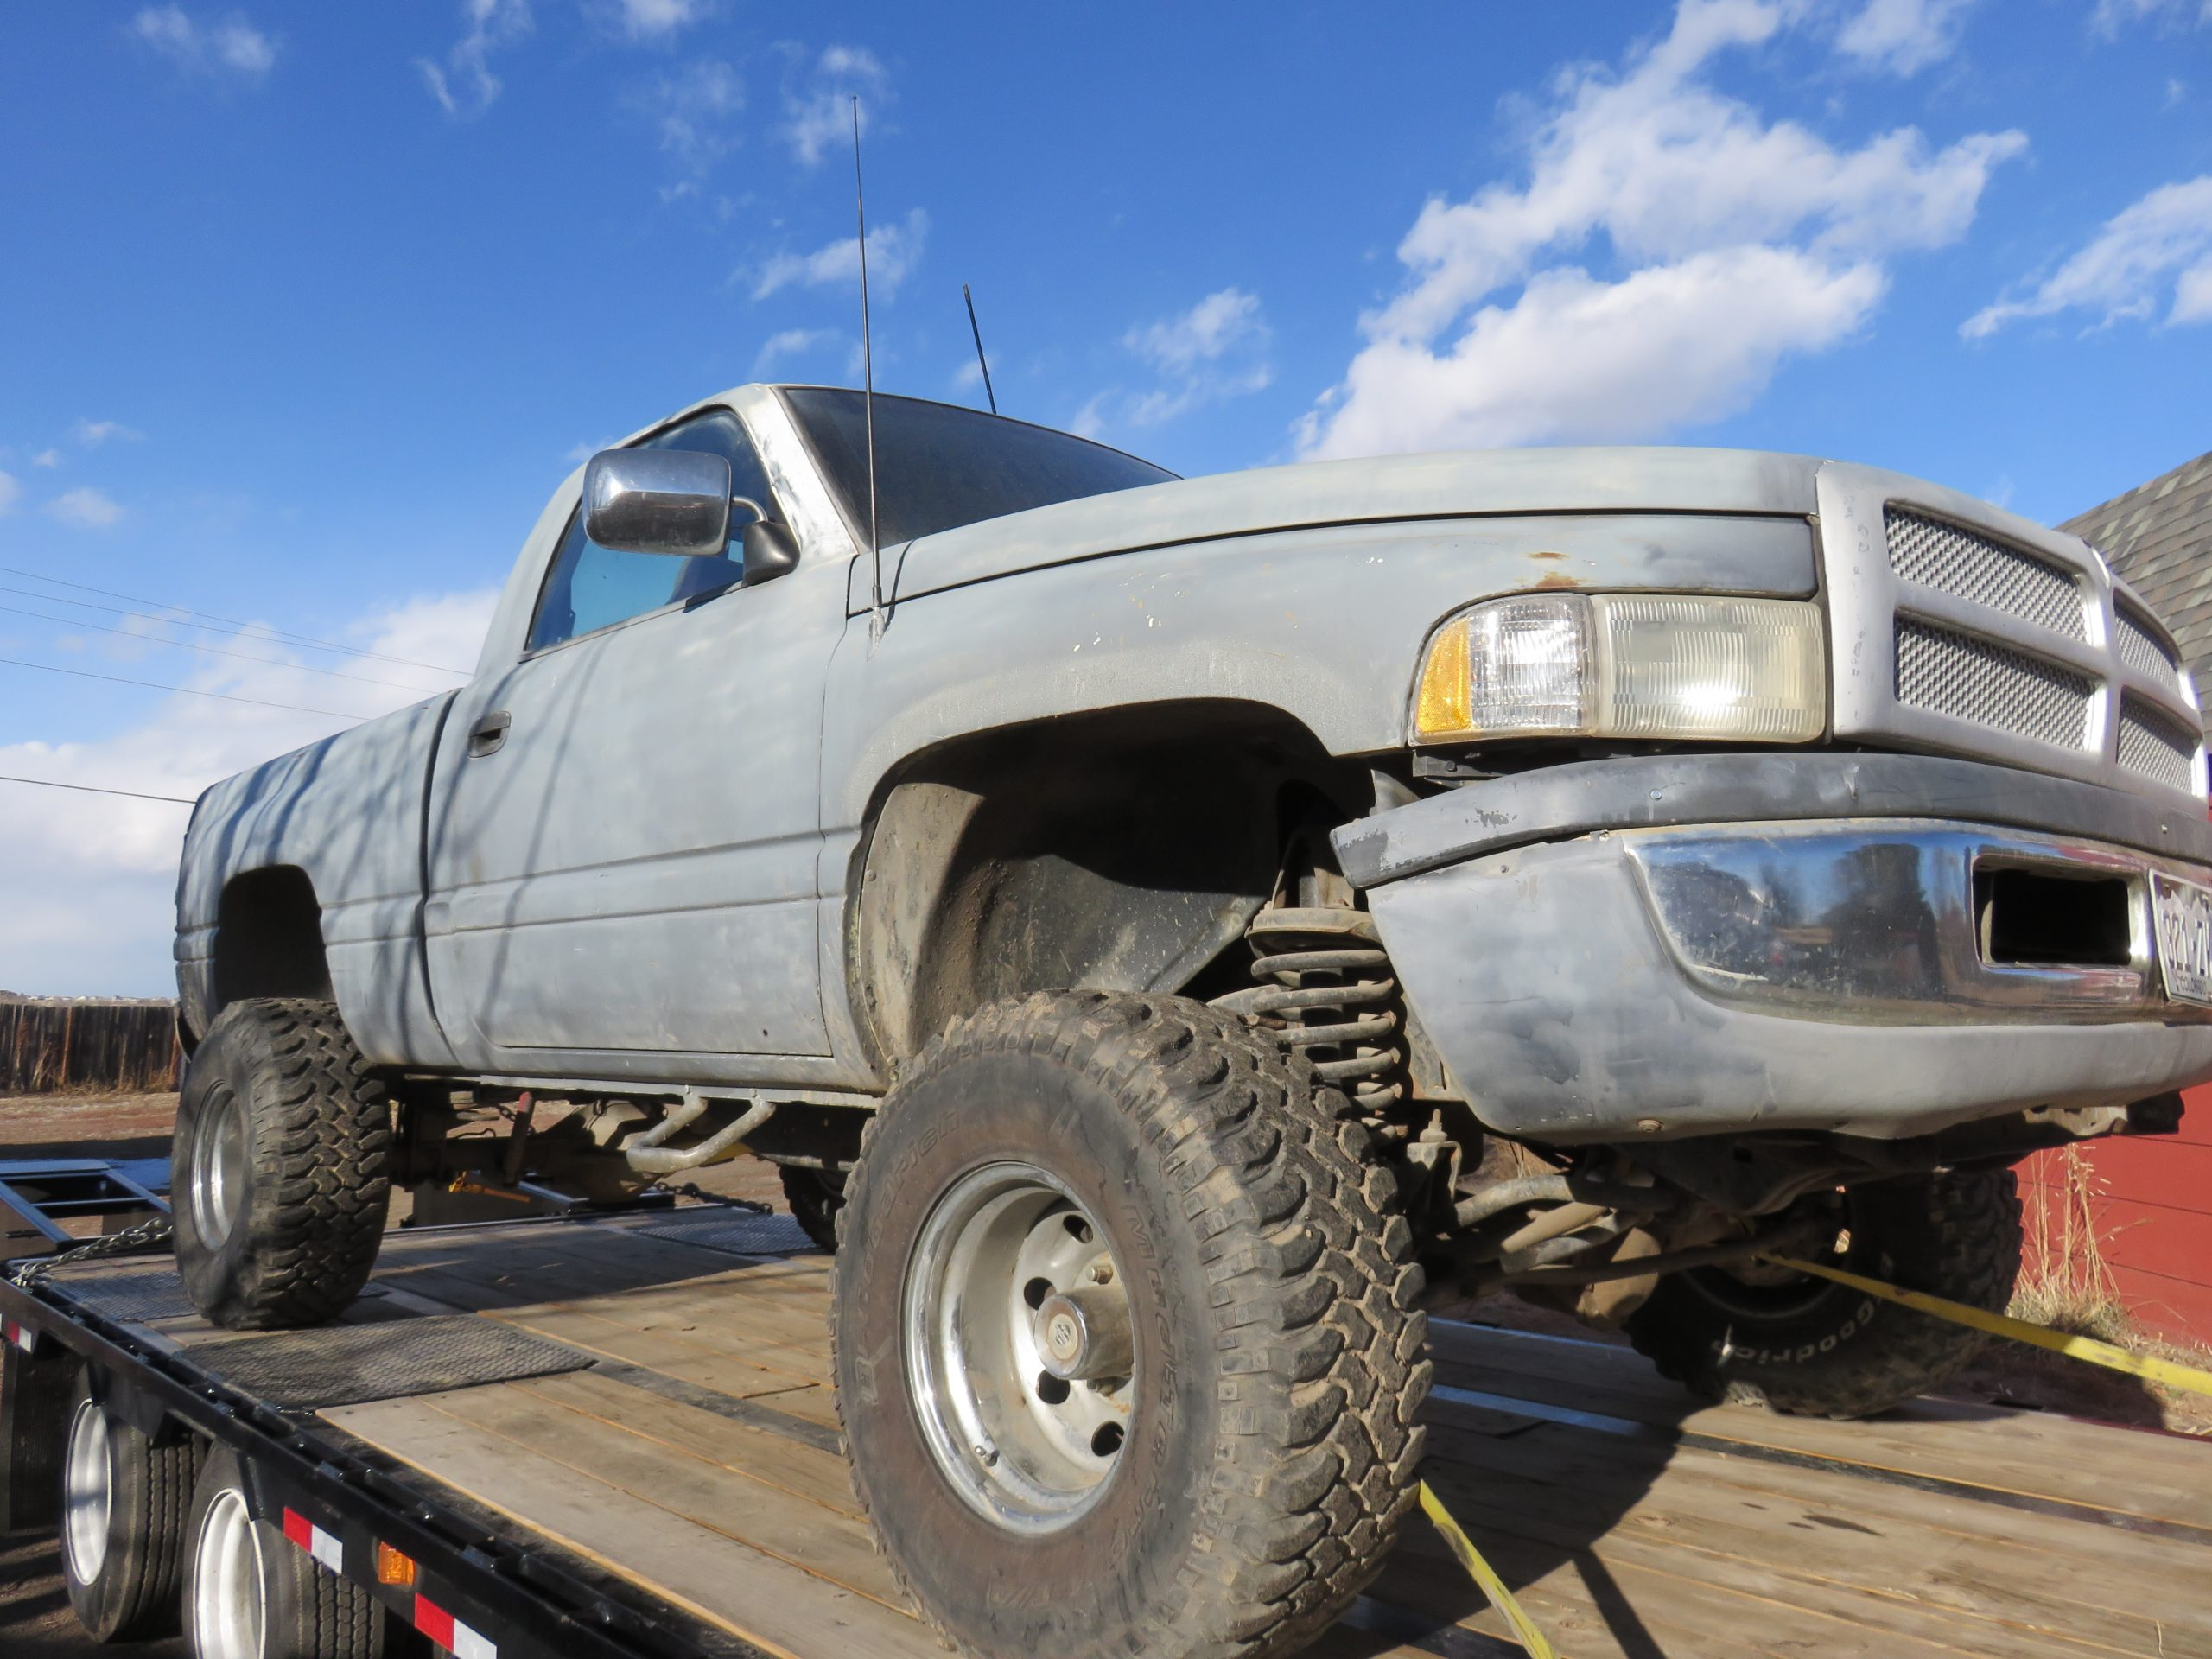 Dodge Ram 1994 Second Generation Restore Project 2014 1500 Tow Hooks Tailgate Firewall Gasket Transfer Case Boot Wheel Flares Skid Plate Bedliner Paint Ball Joints Drag Link And Much More